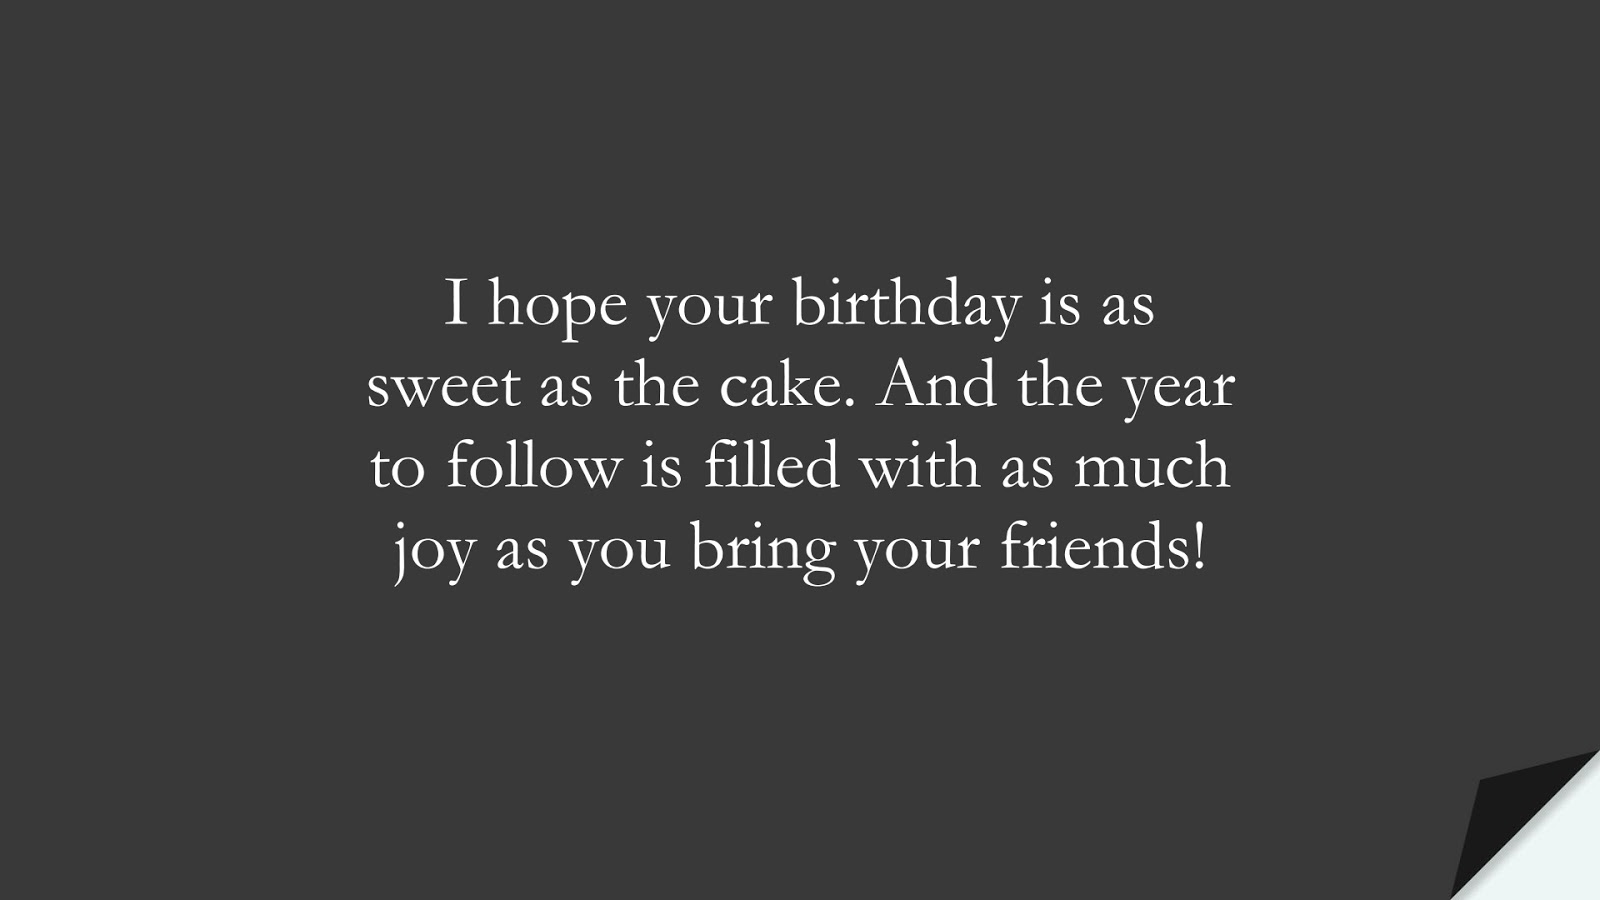 I hope your birthday is as sweet as the cake. And the year to follow is filled with as much joy as you bring your friends!FALSE